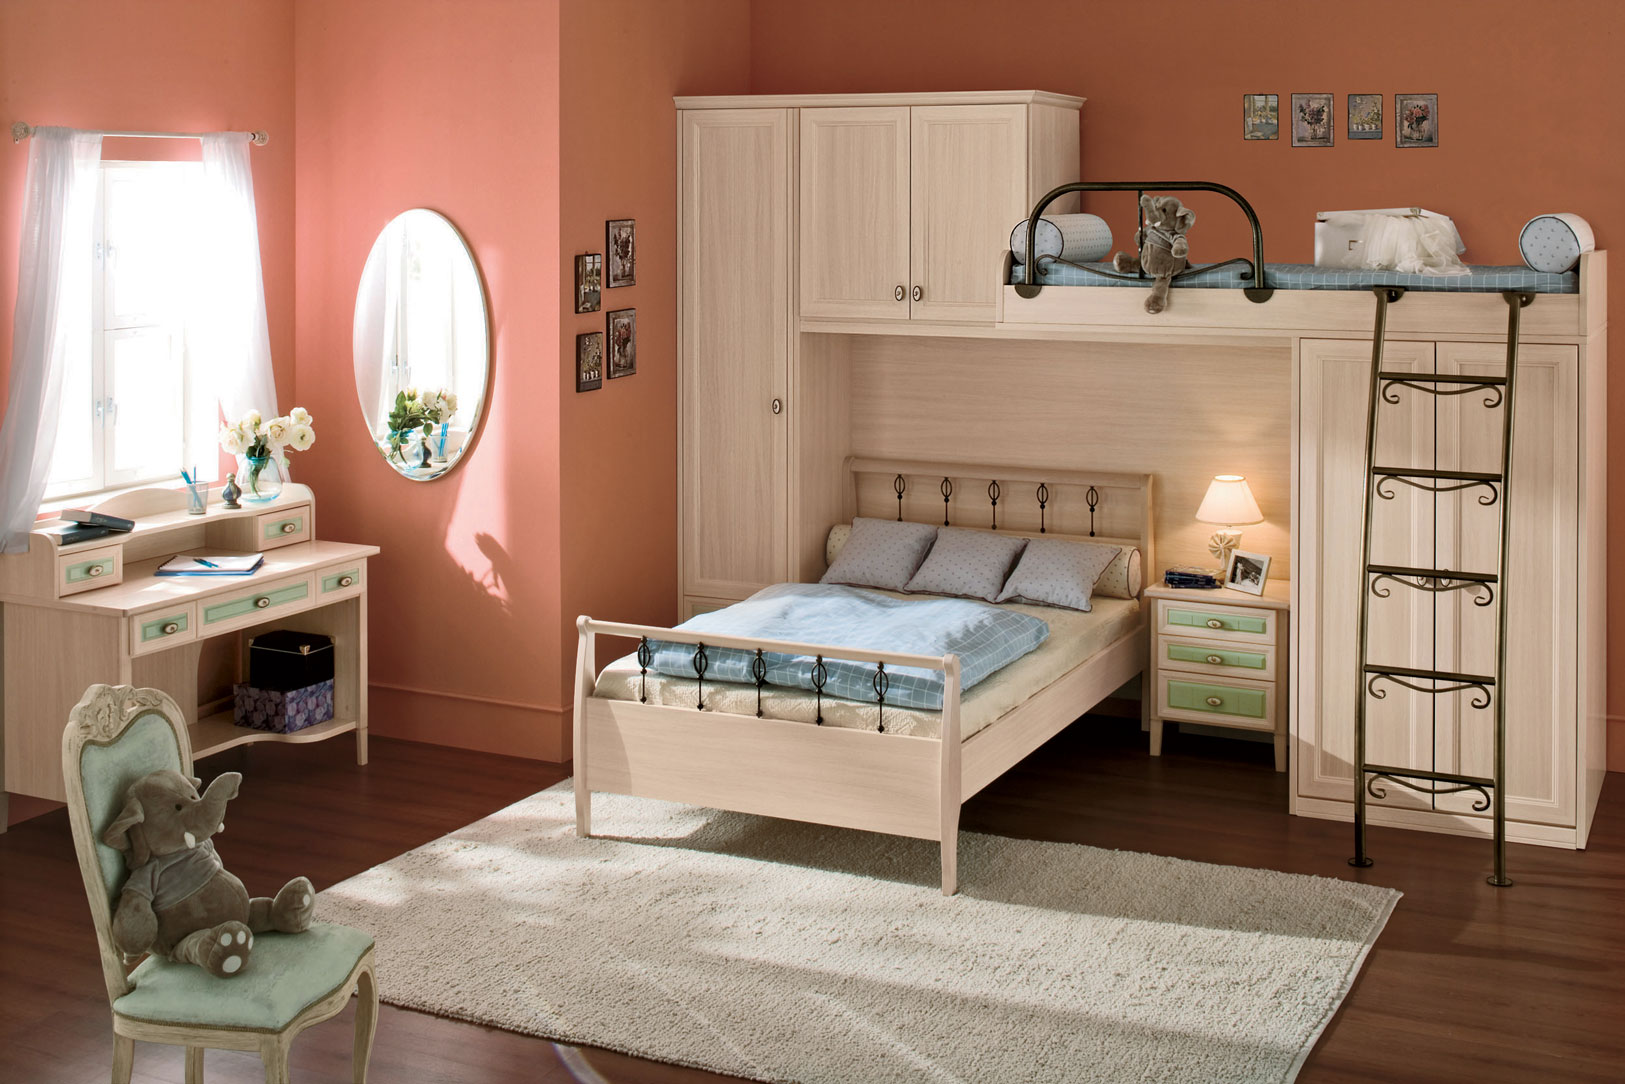 HGTV keeps your kids' rooms playful with decorating ideas and themes for boys and girls, including paint colors, decor and furniture inspiration with pictures.